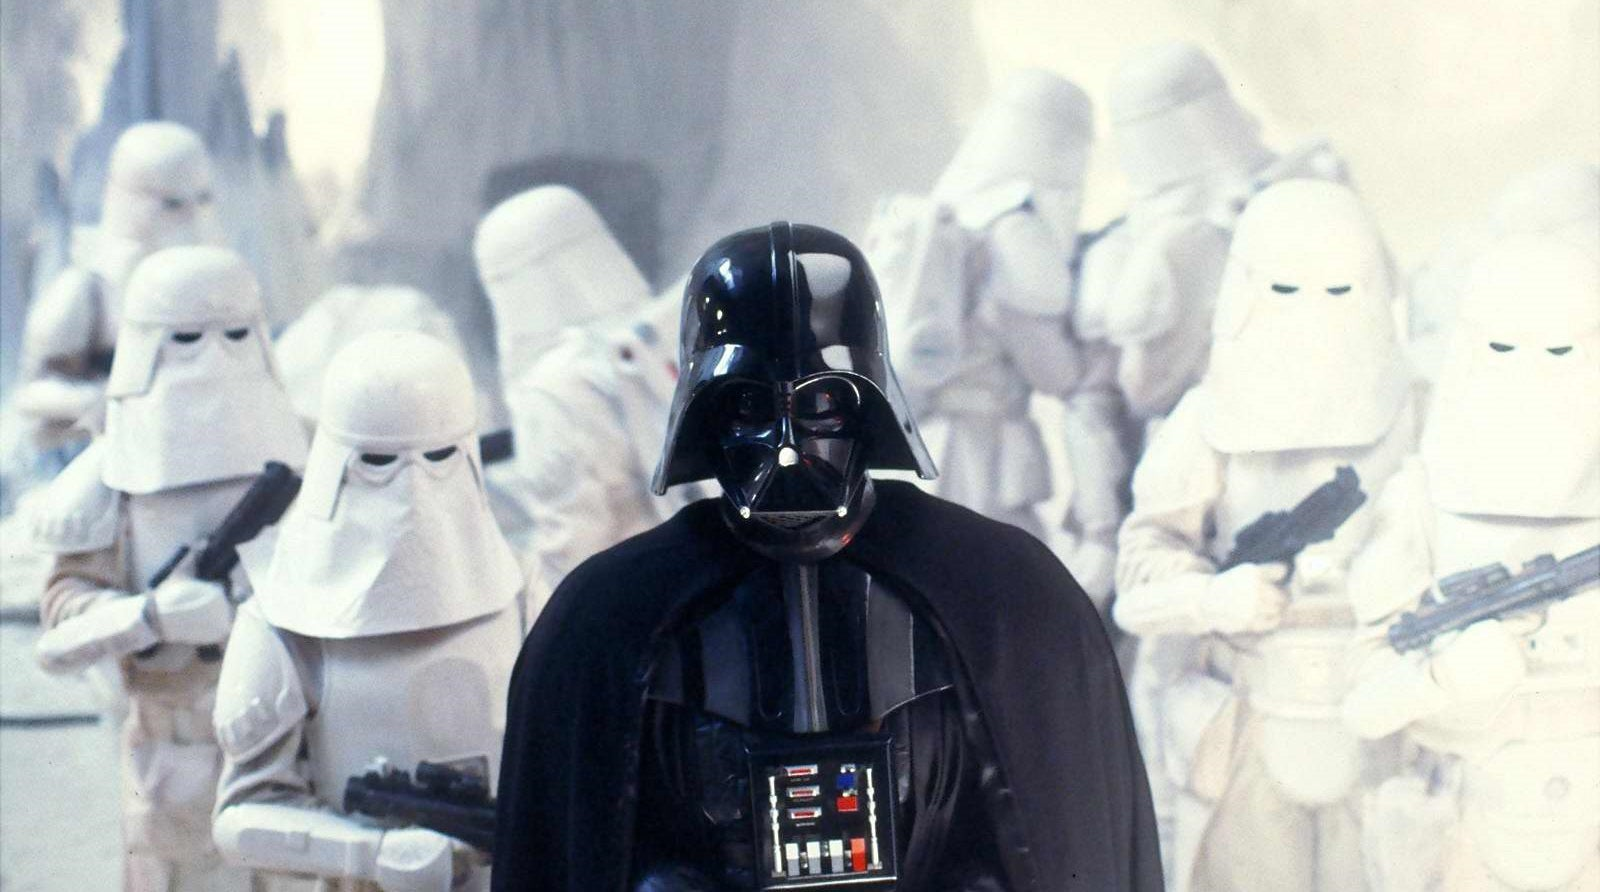 http://static.independent.co.uk/s3fs-public/thumbnails/image/2016/01/28/17/darth-vader-battle-of-hoth.jpg